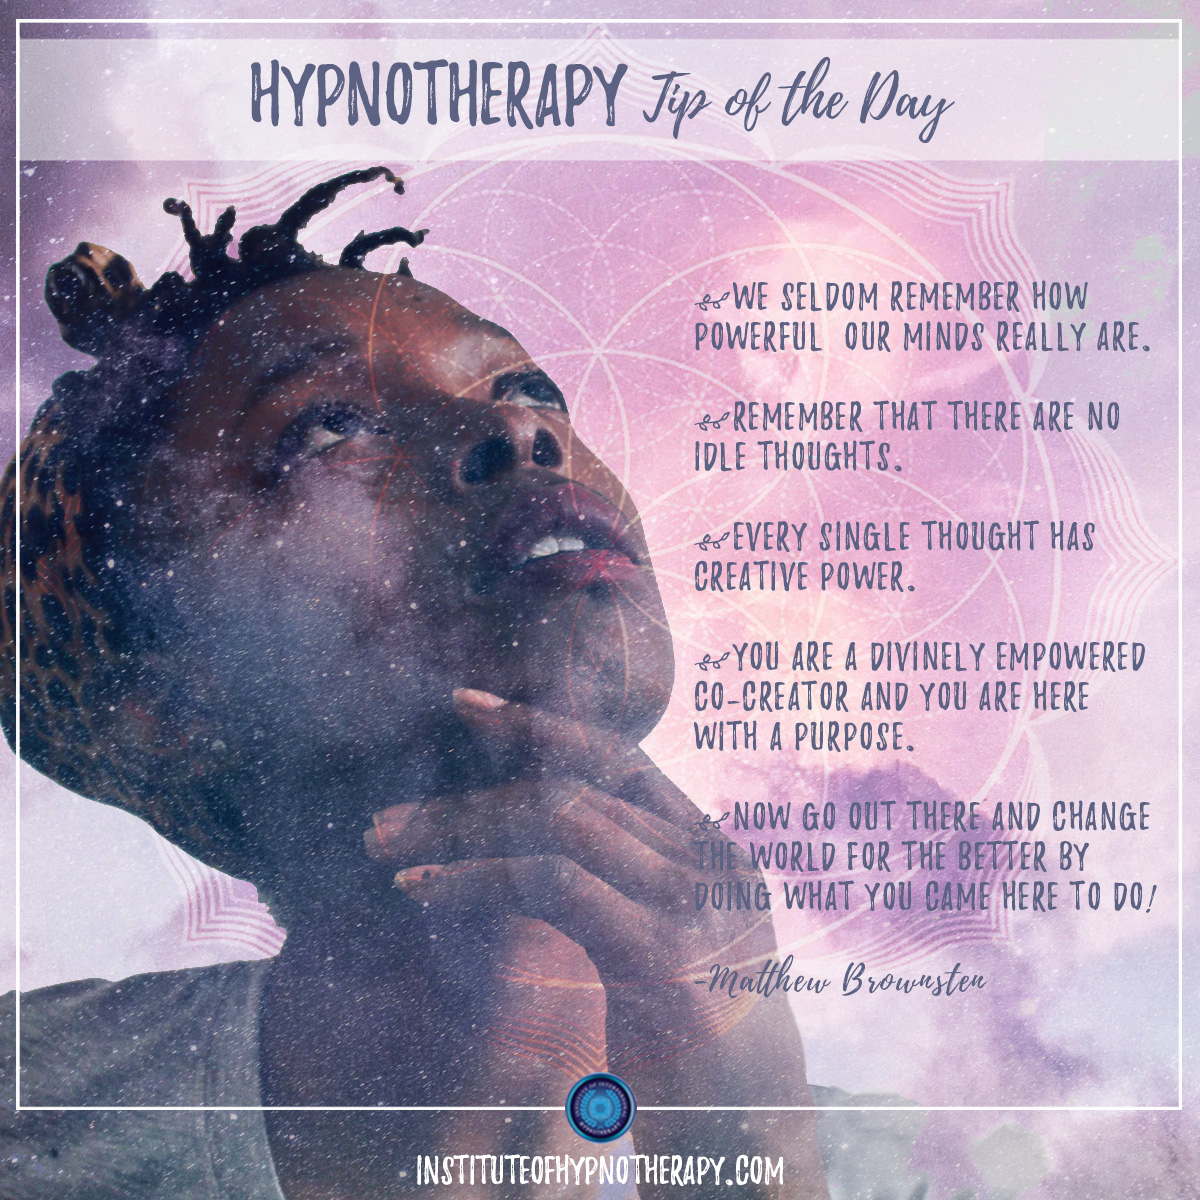 Hypnotherapy Tip of the Day – Power of the Mind